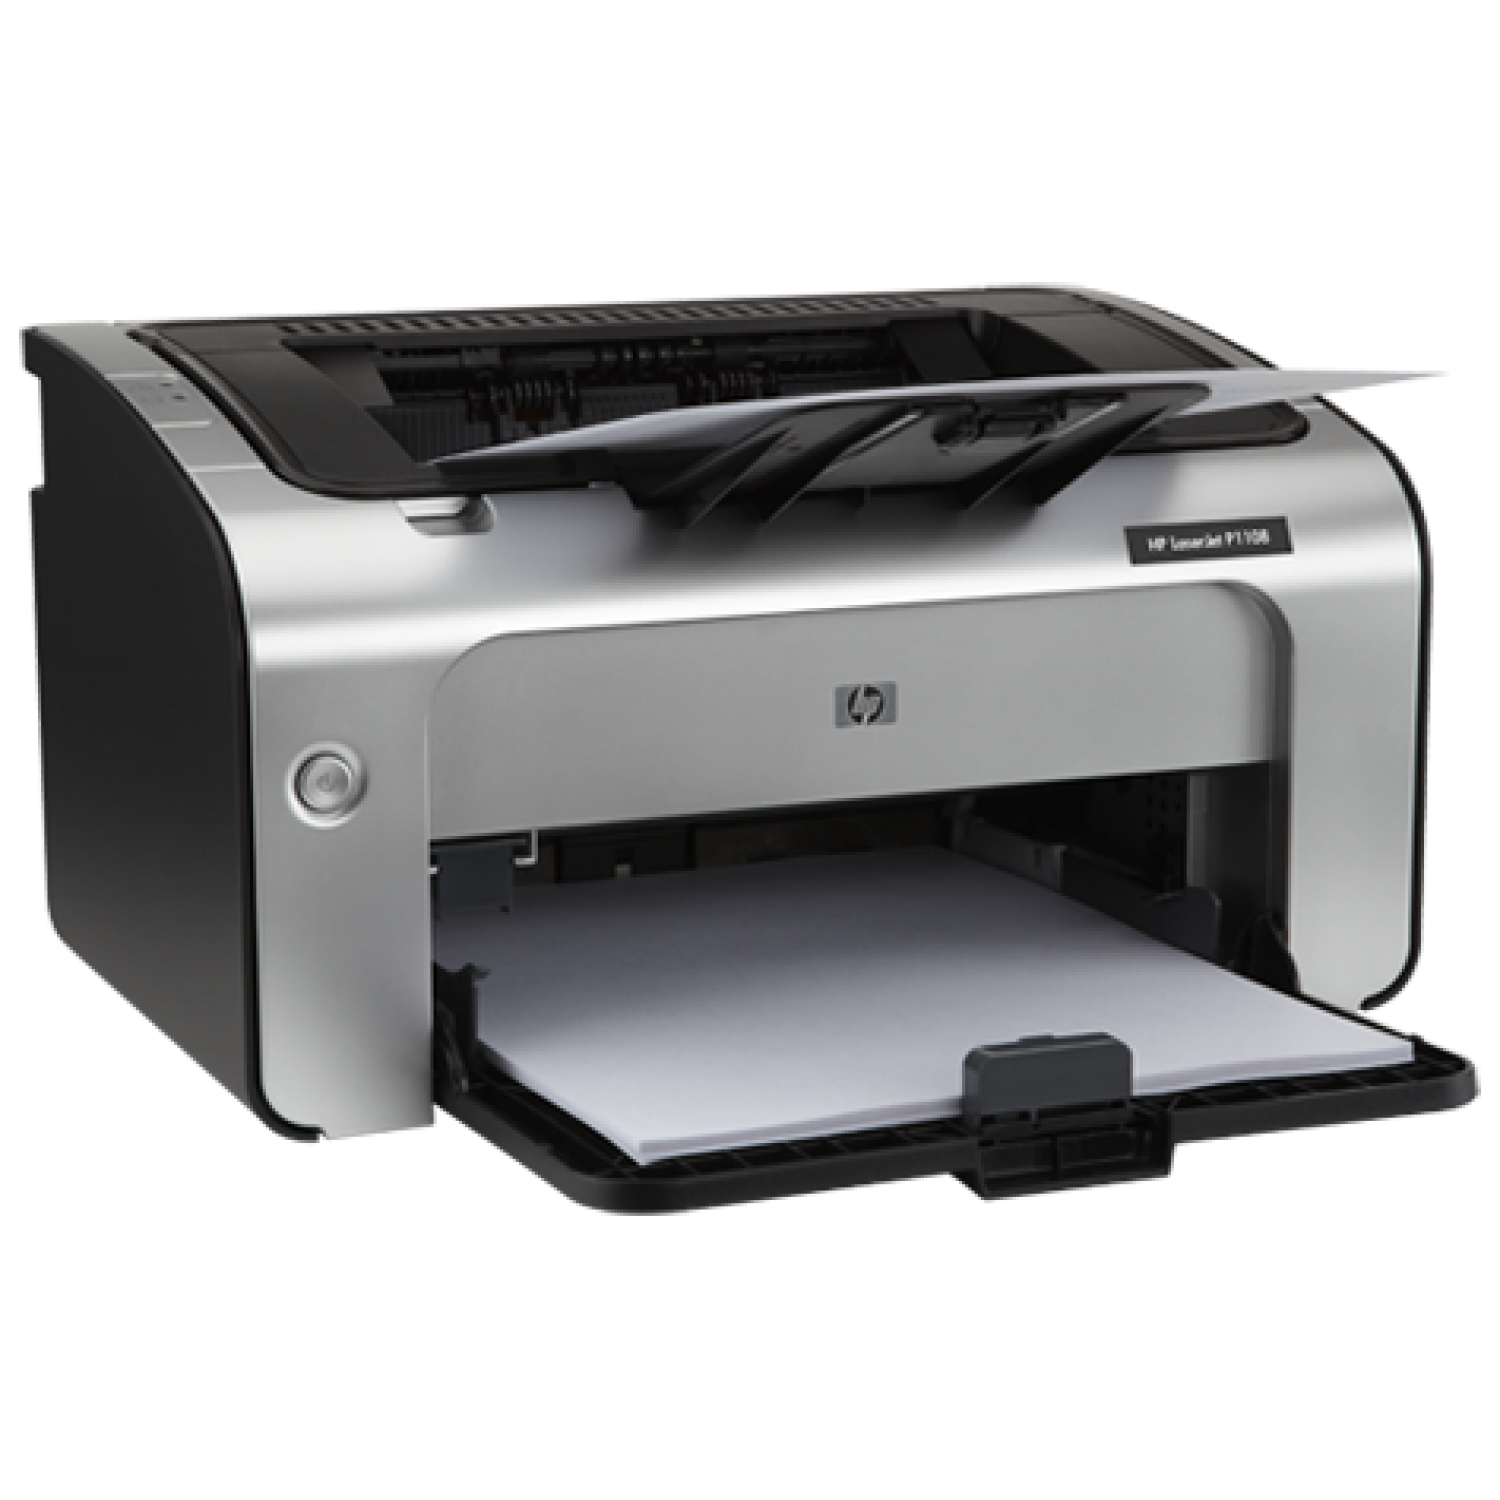 printer png transparent printer images pluspng #22069